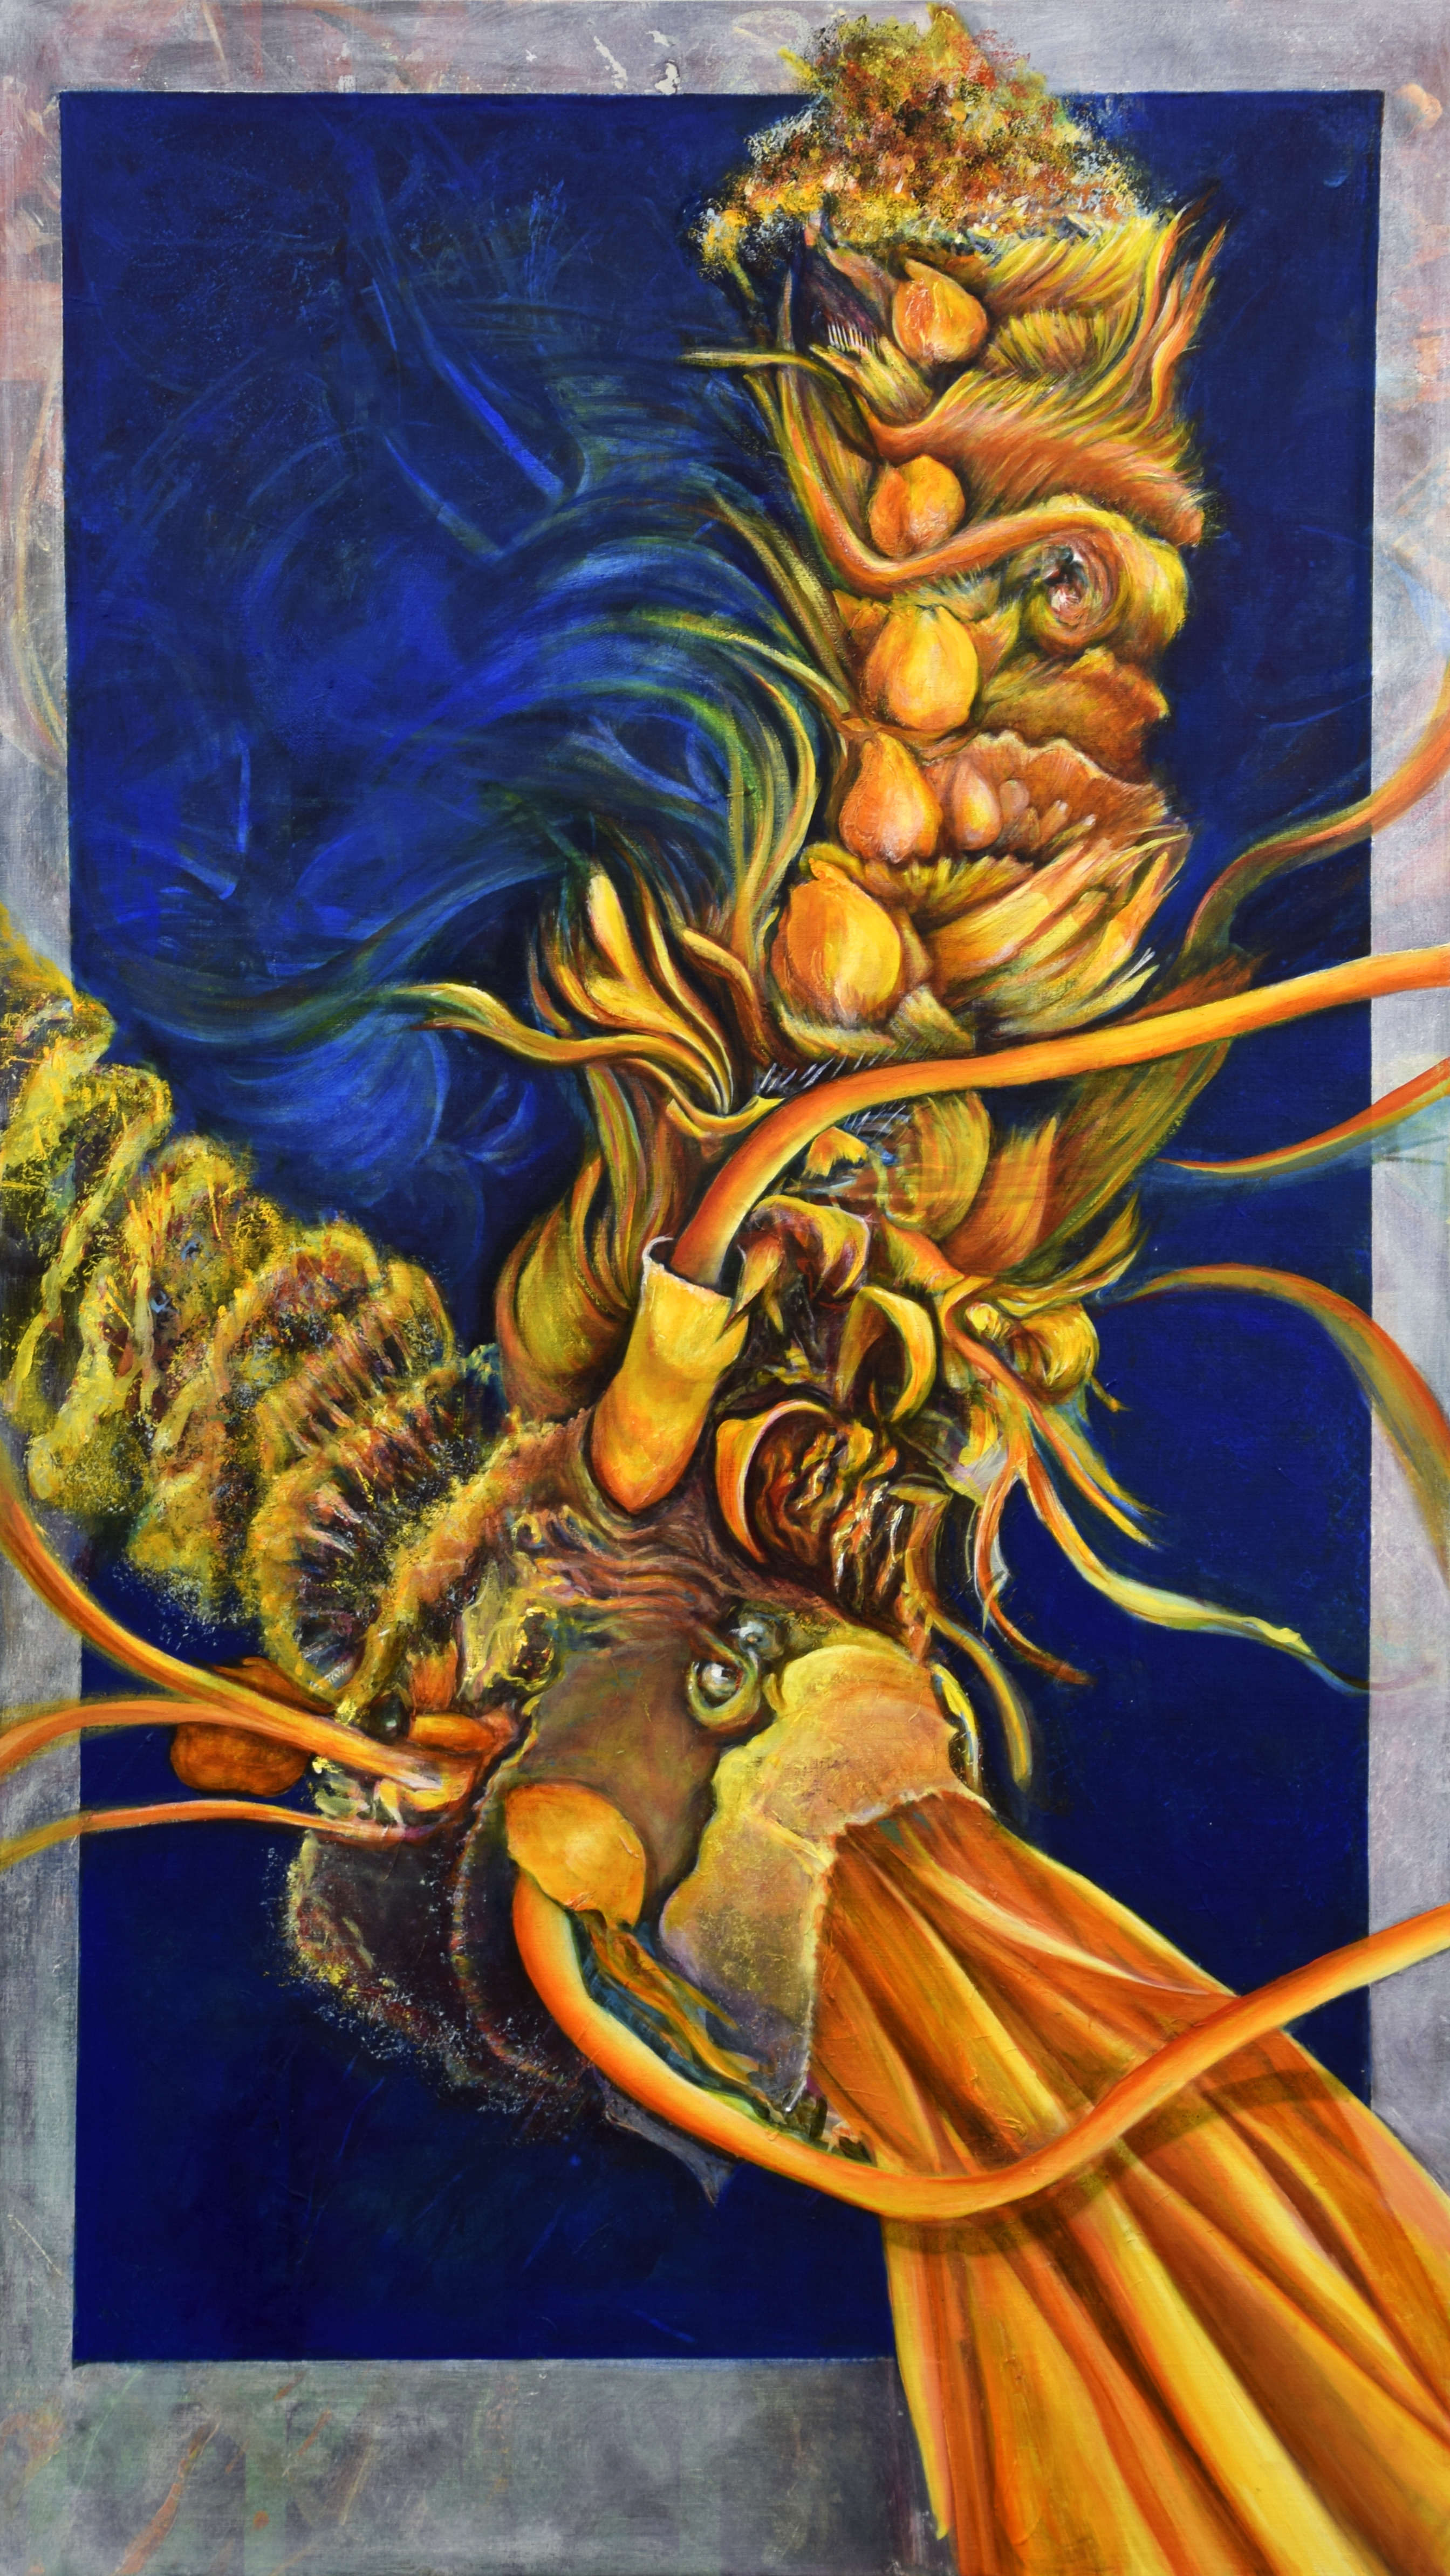 oil painting, unraveling, sea oat, dance of decay, endangered